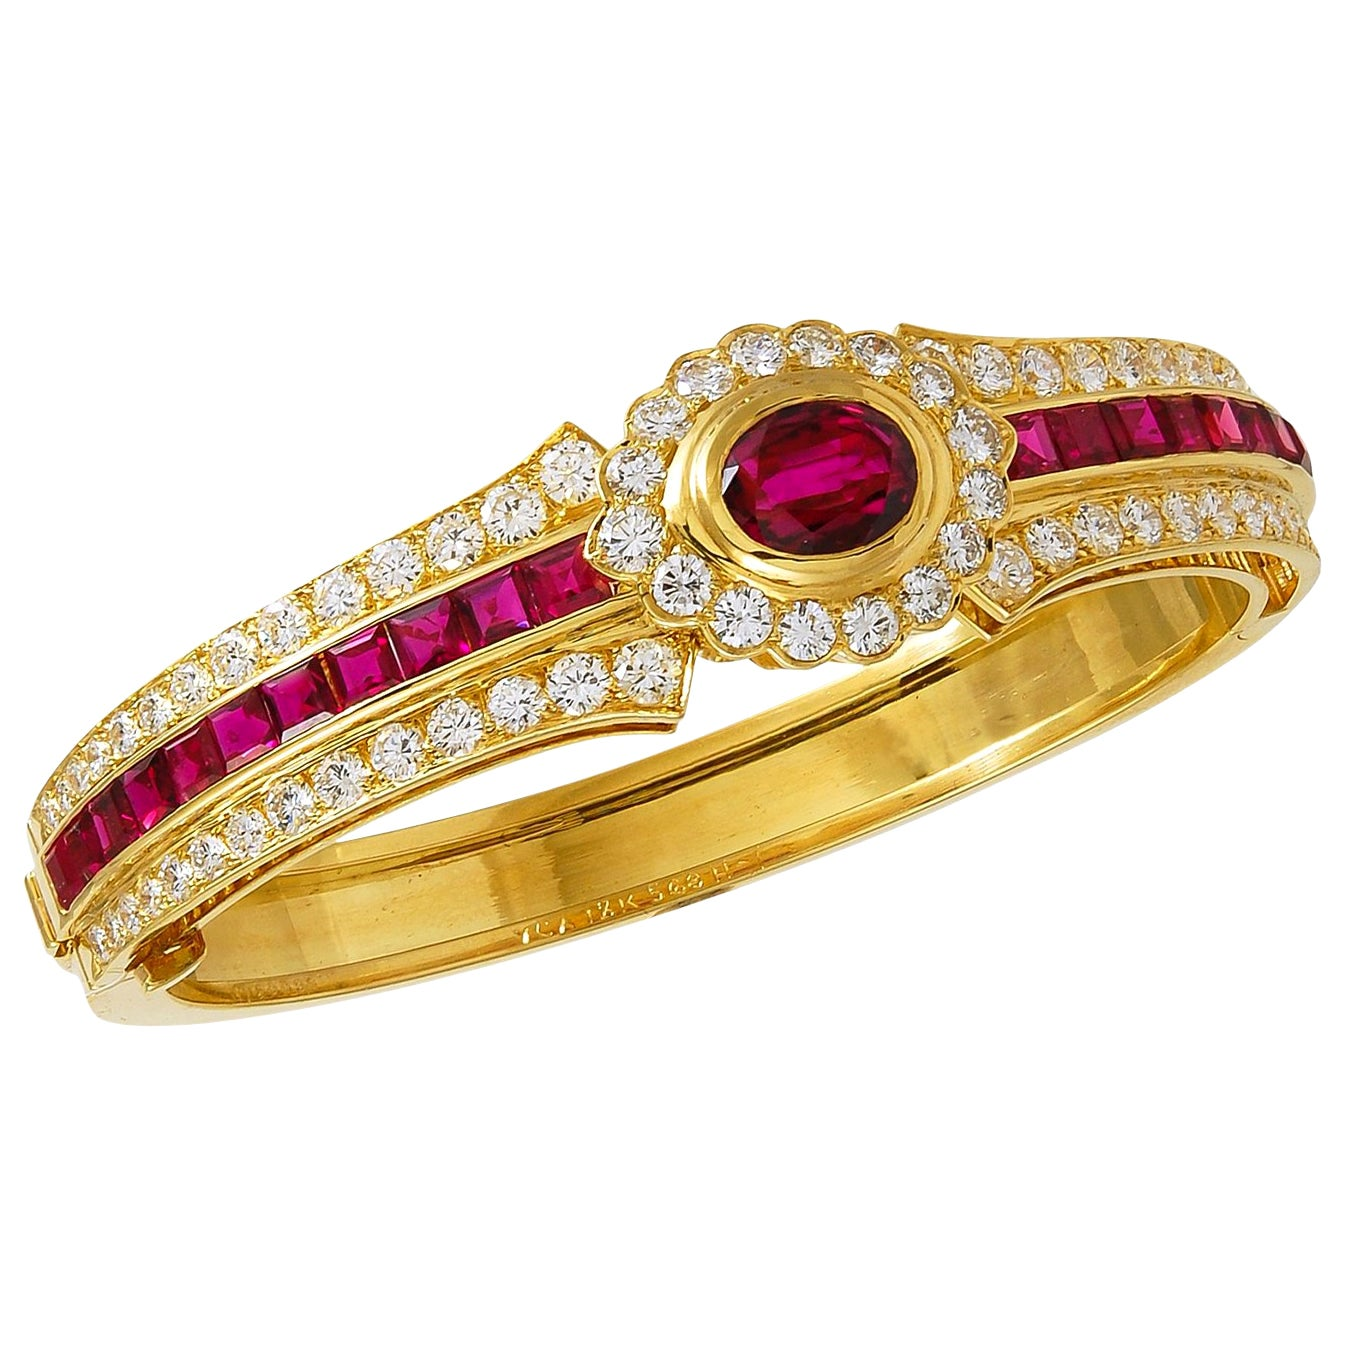 Van Cleef & Arpels Diamond Ruby Yellow Gold Bangle Bracelet